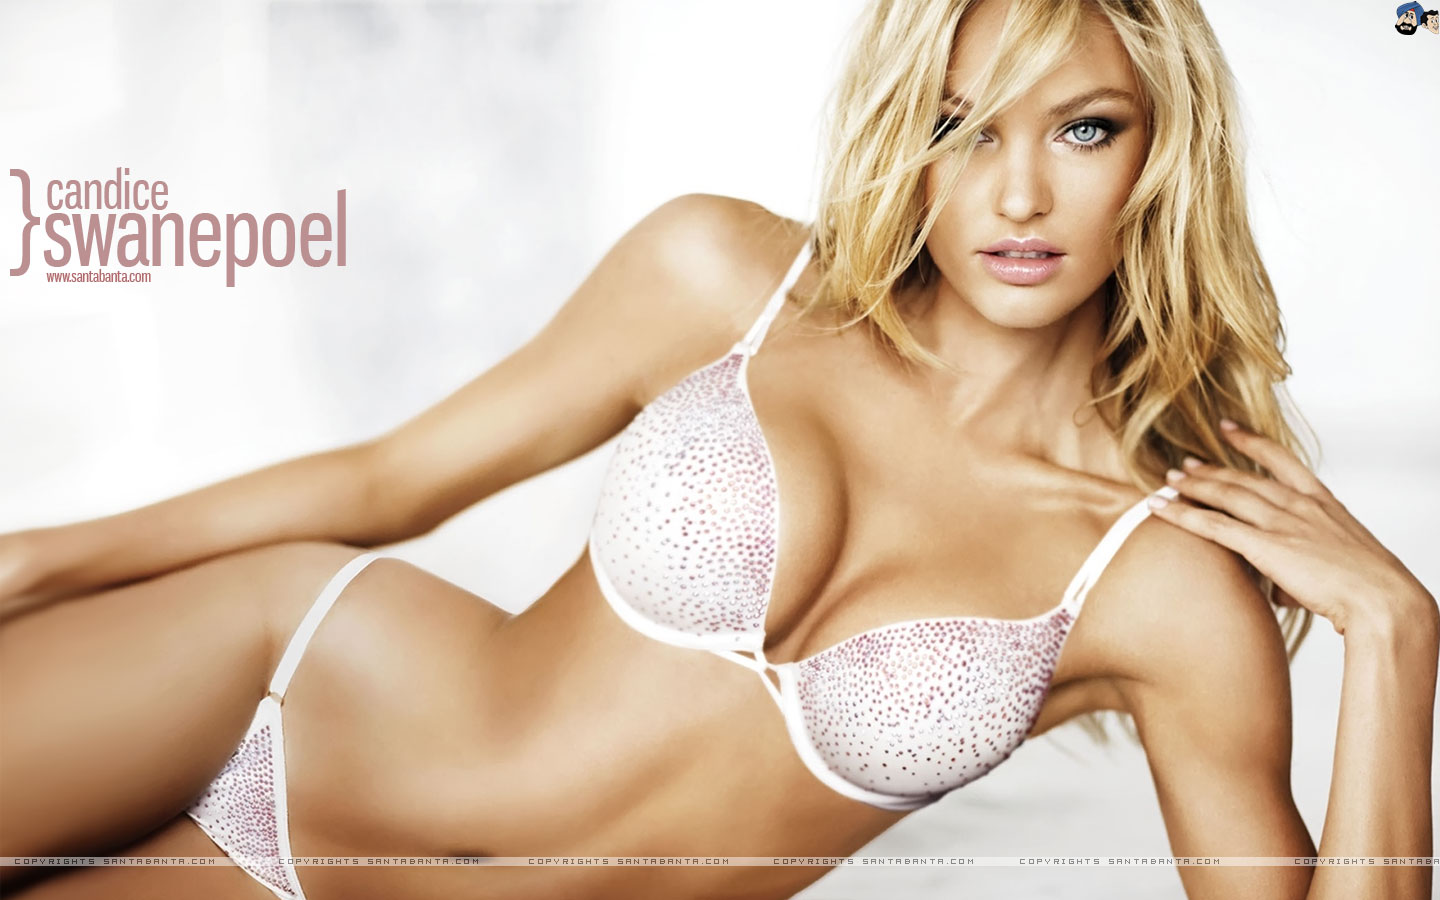 Was under candice swanepoel hot bikini question removed